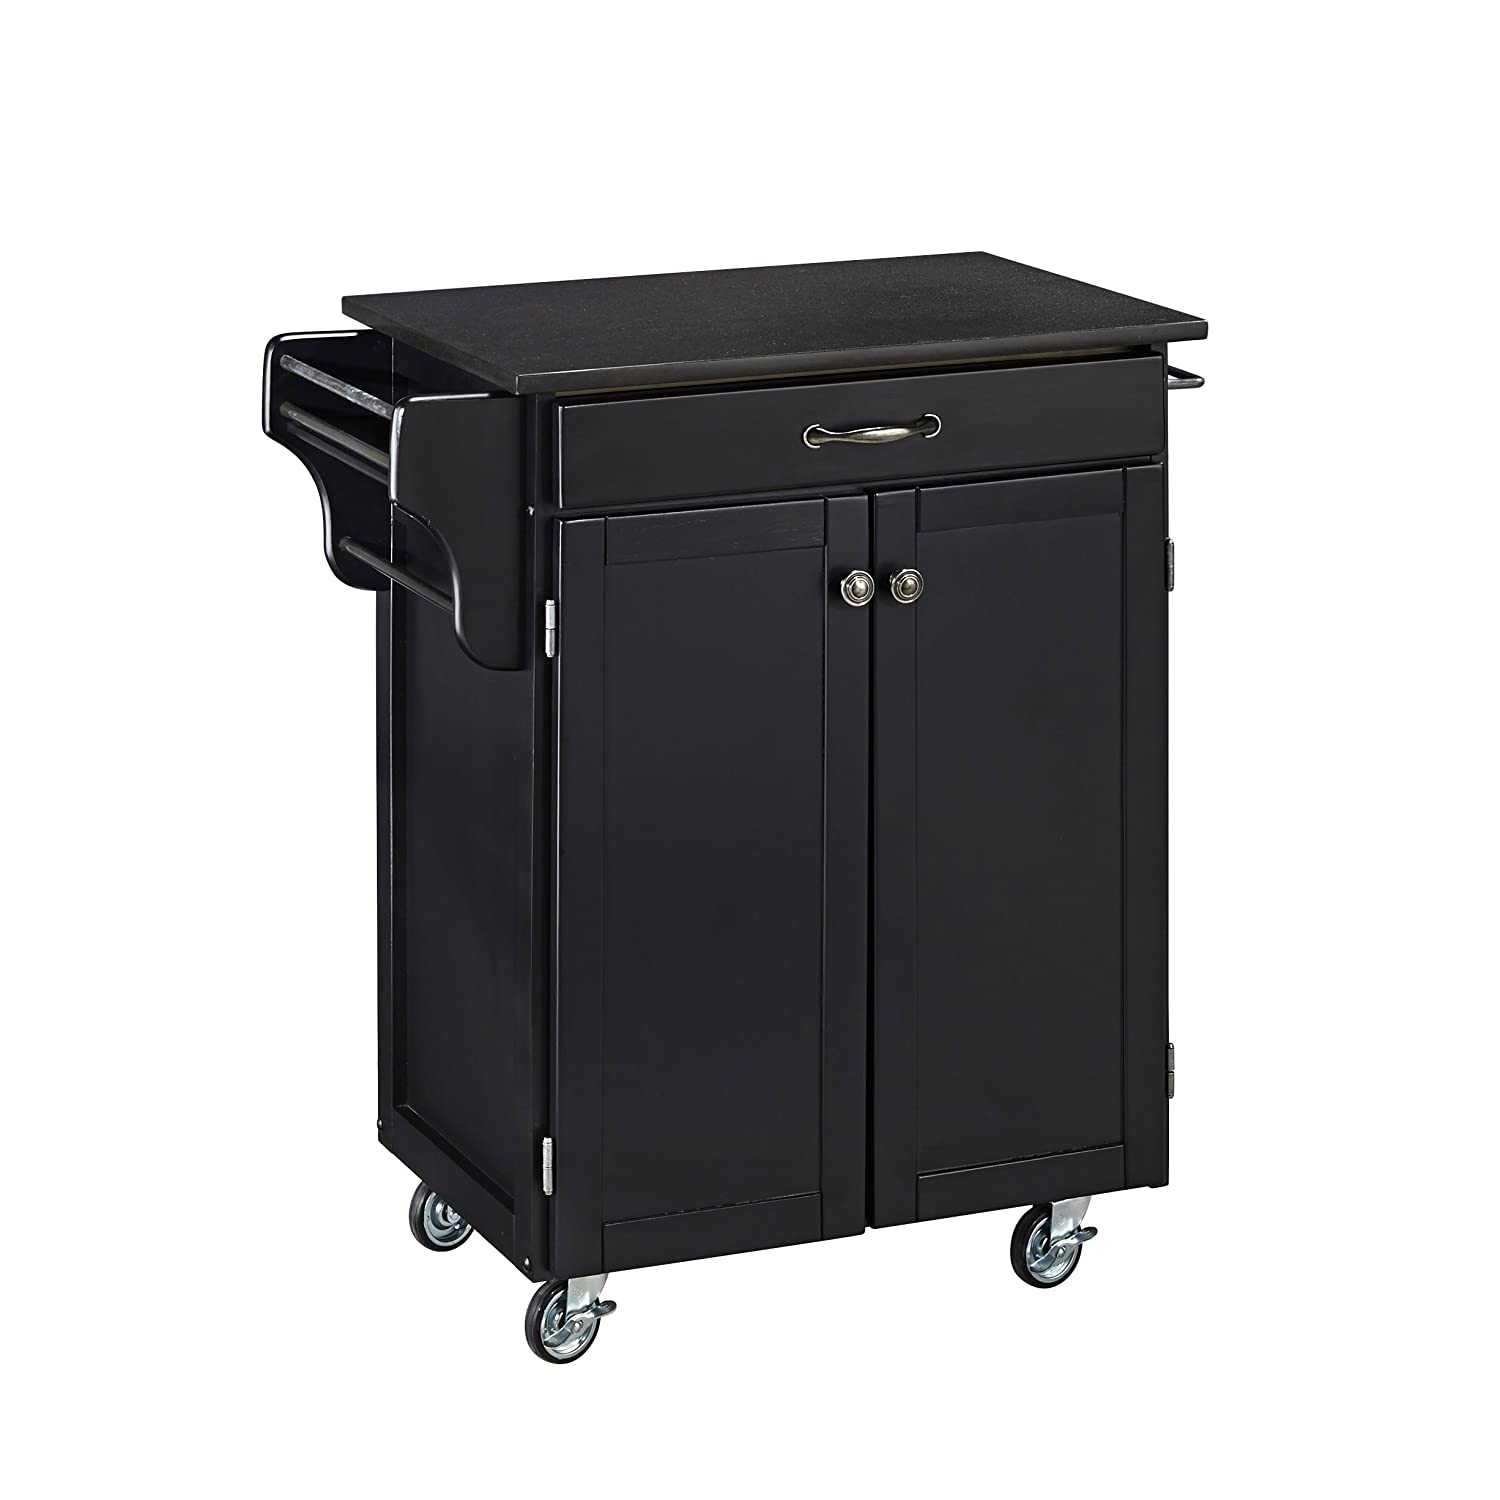 Home Styles 9001-0044 Create-a-Cart 9001 Series Cuisine Cart with Black Granite Top, Black, 32-1/2-Inch